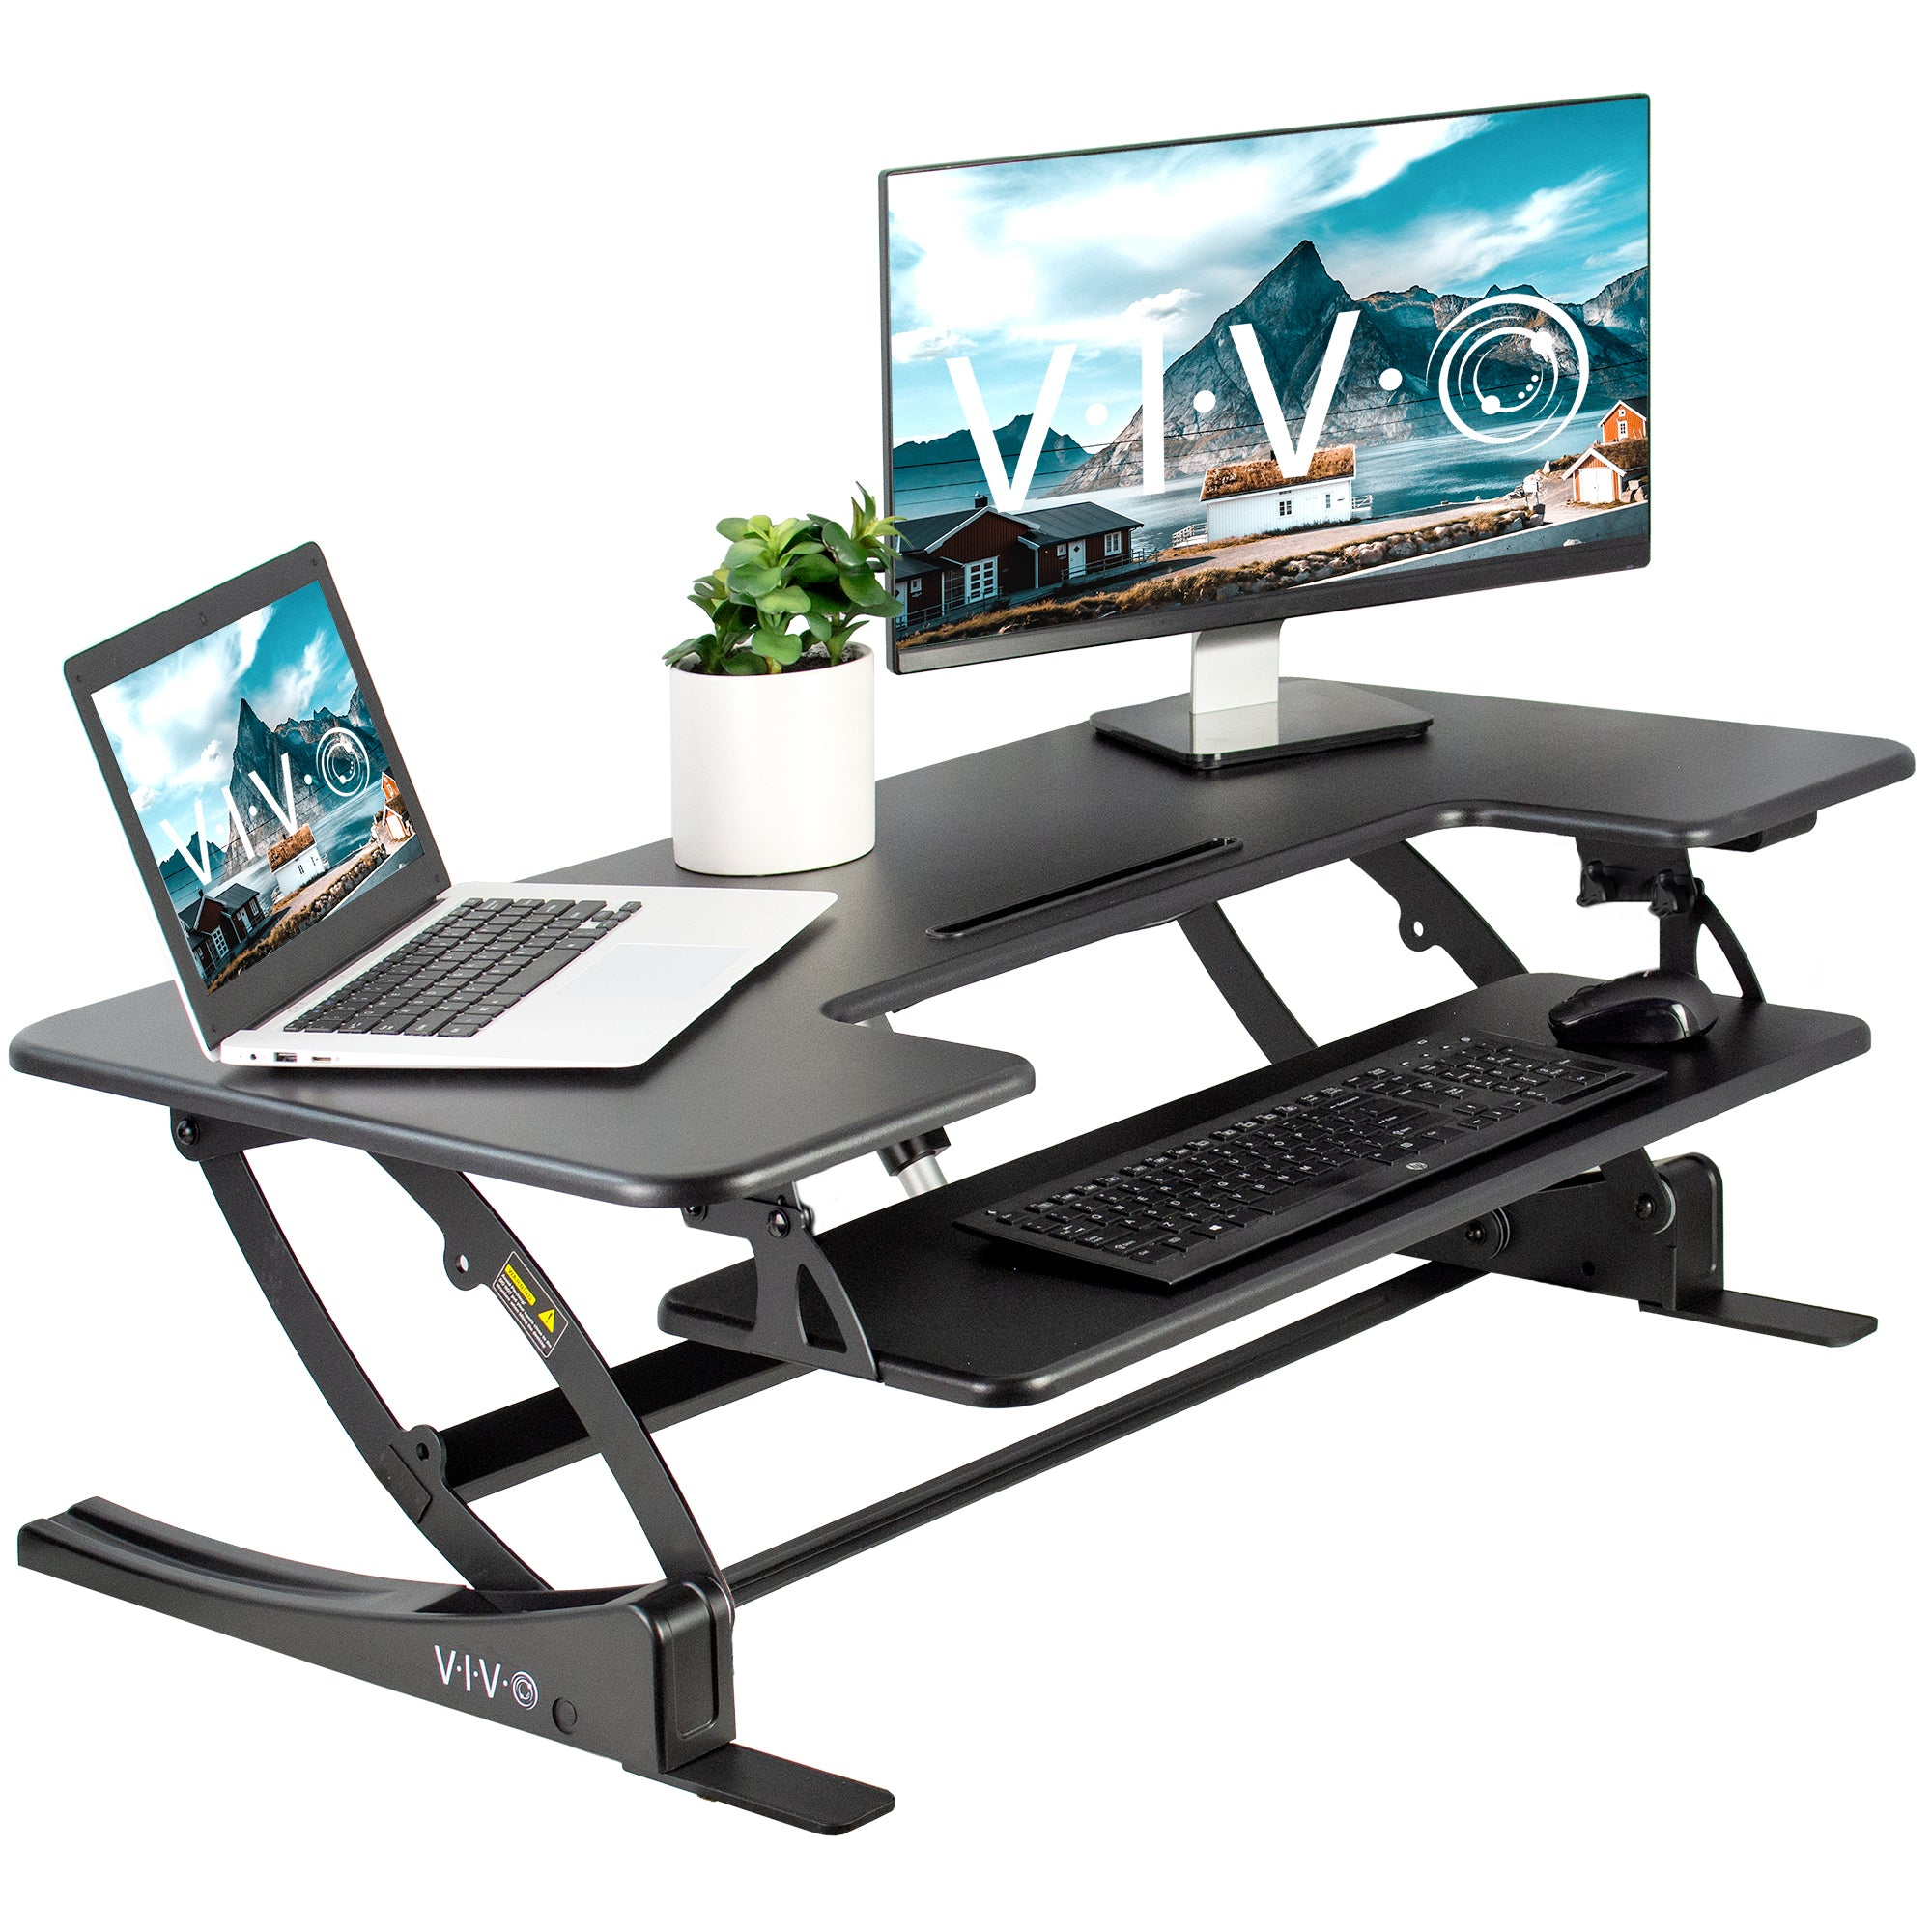 Desk-v000vle<br><br>large 42\